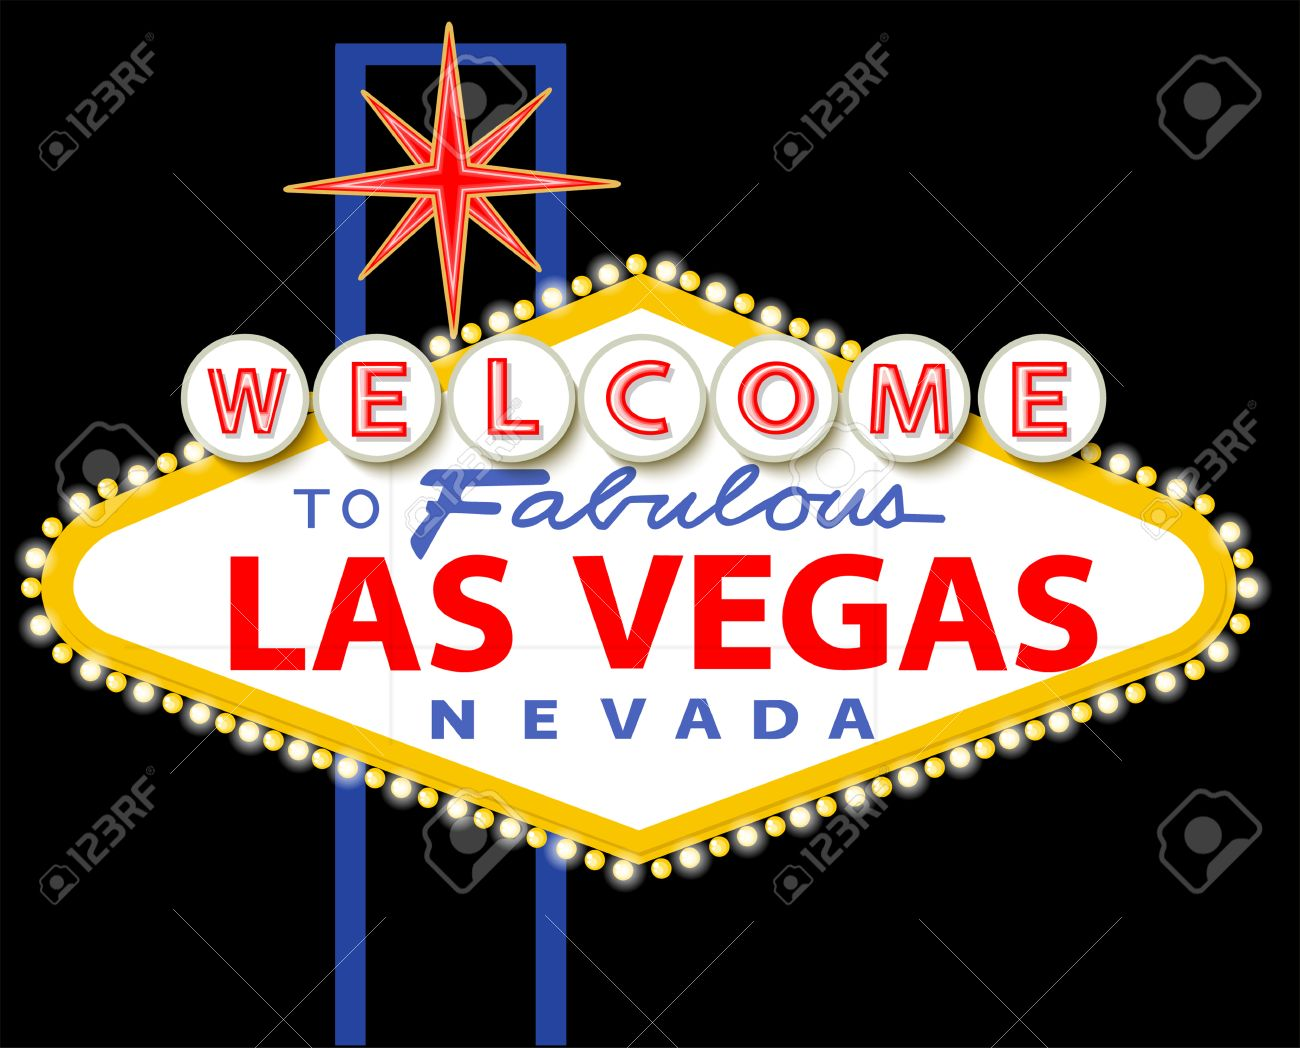 Welcome to fabulous Las Vegas Nevada sign - 40337073